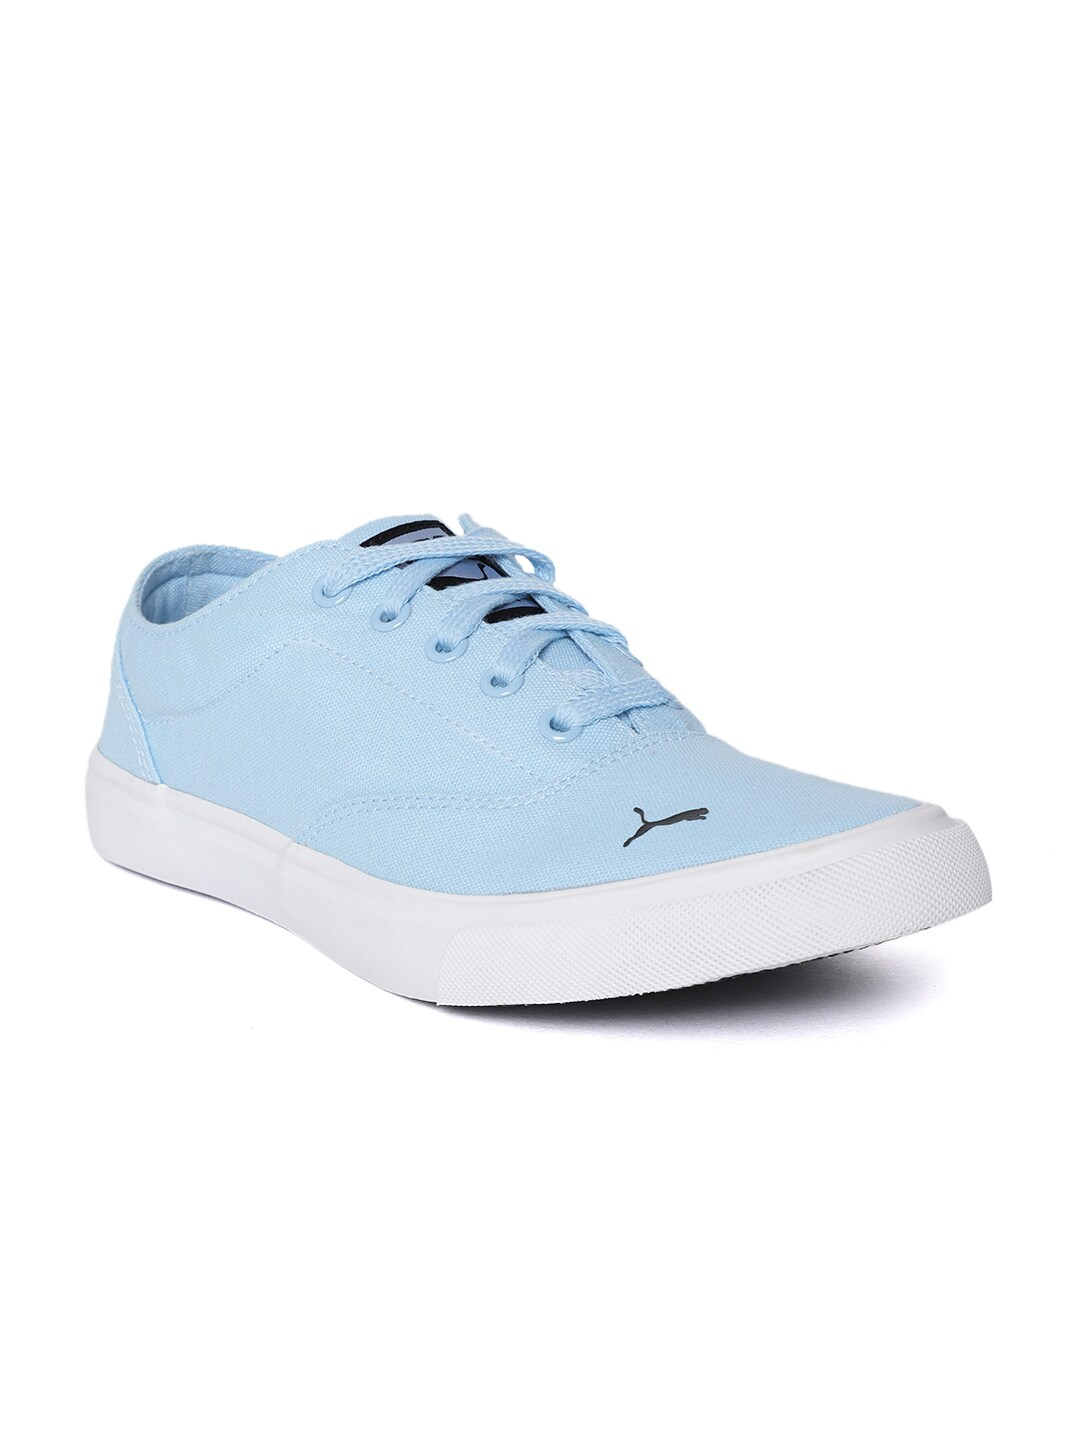 12c56d5fe8613 Puma Limited Edition - Buy Puma Limited Edition online in India